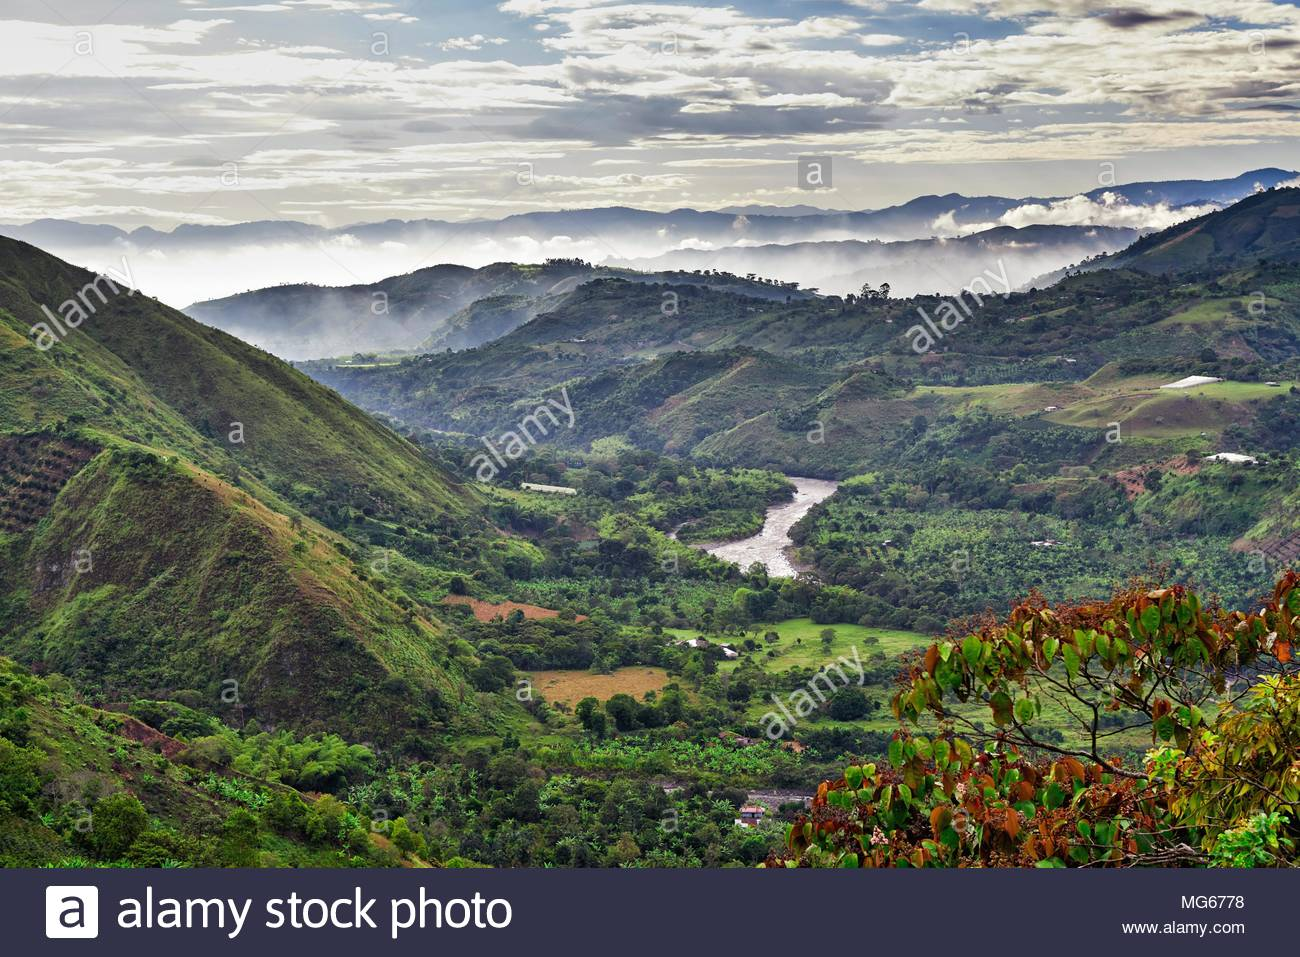 mountain landscape of Andes with Rio Magdalena - Stock Image